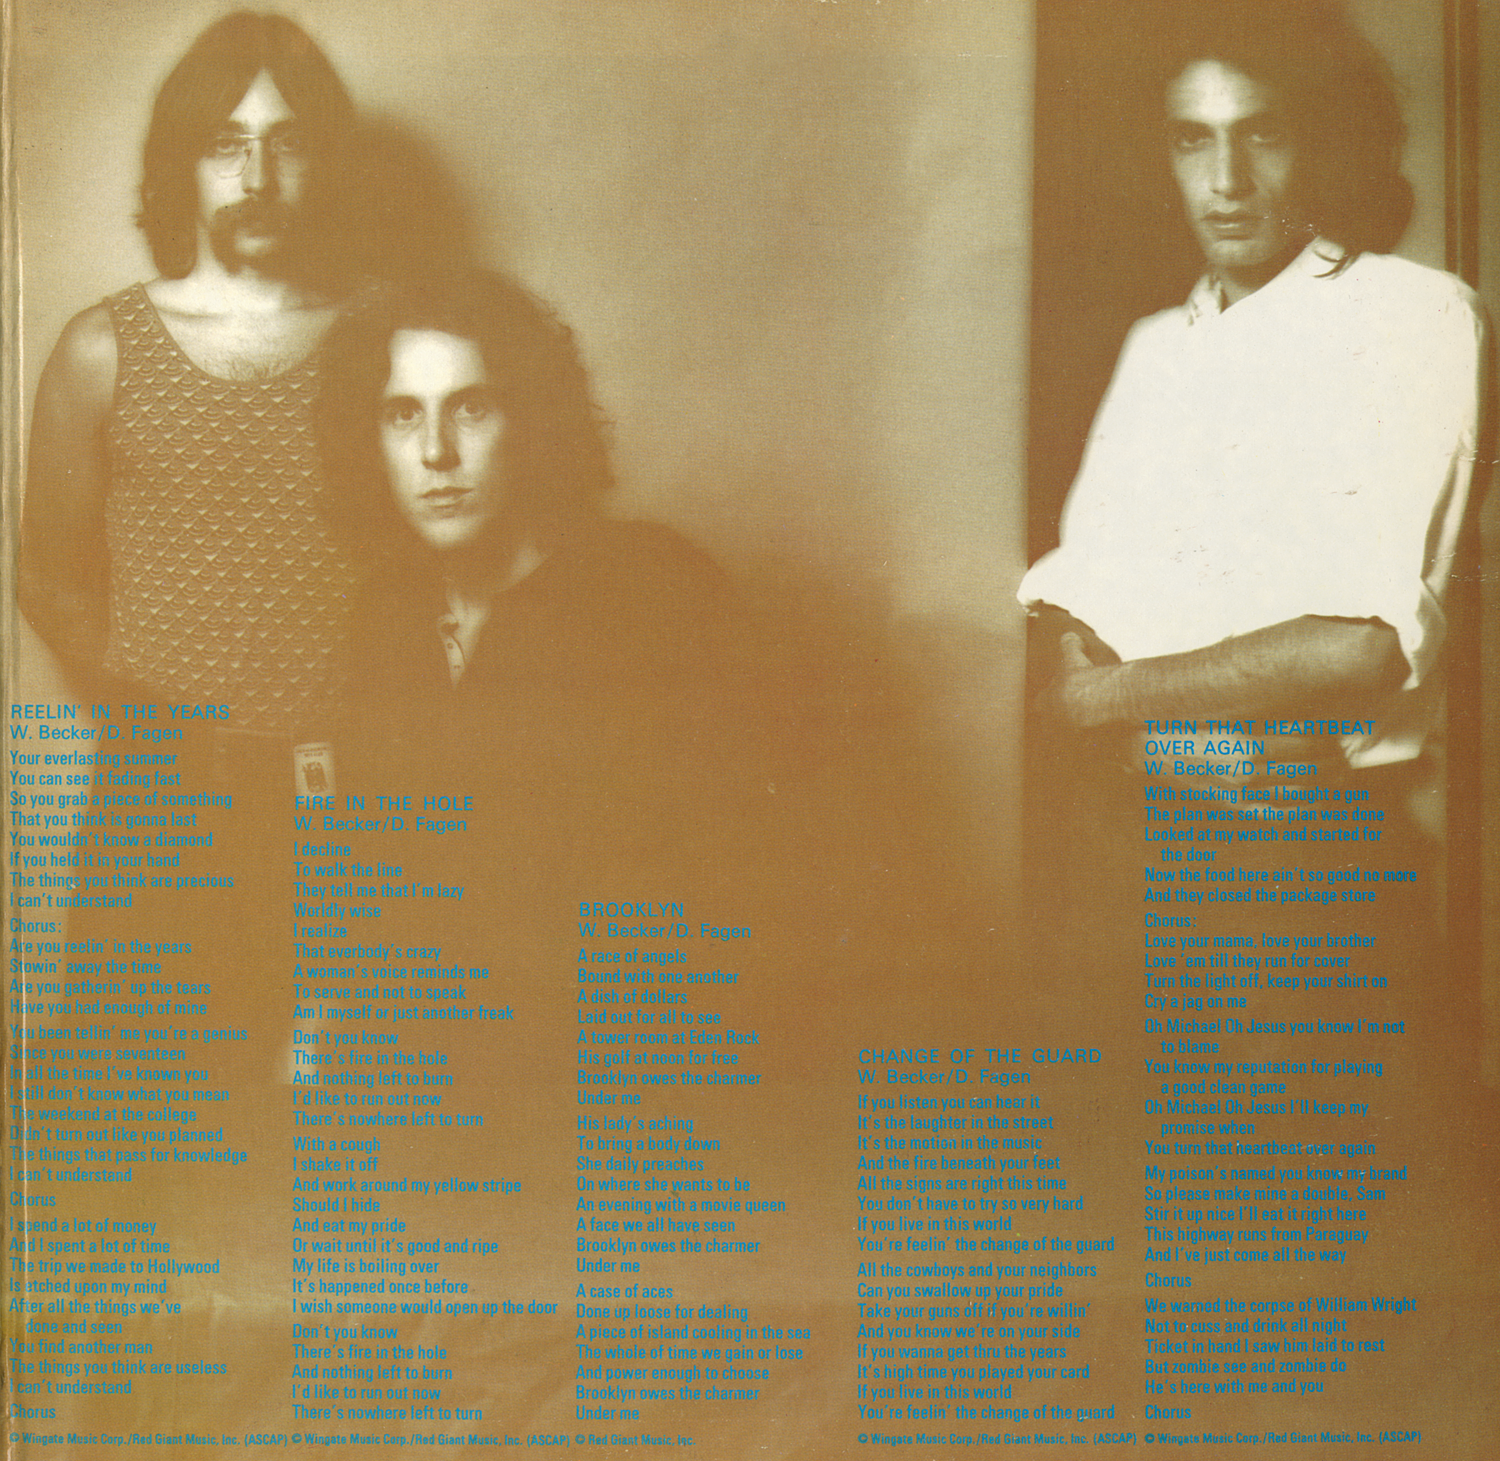 Steely Dan Can T Buy A Thrill Vinyl Album Covers Com